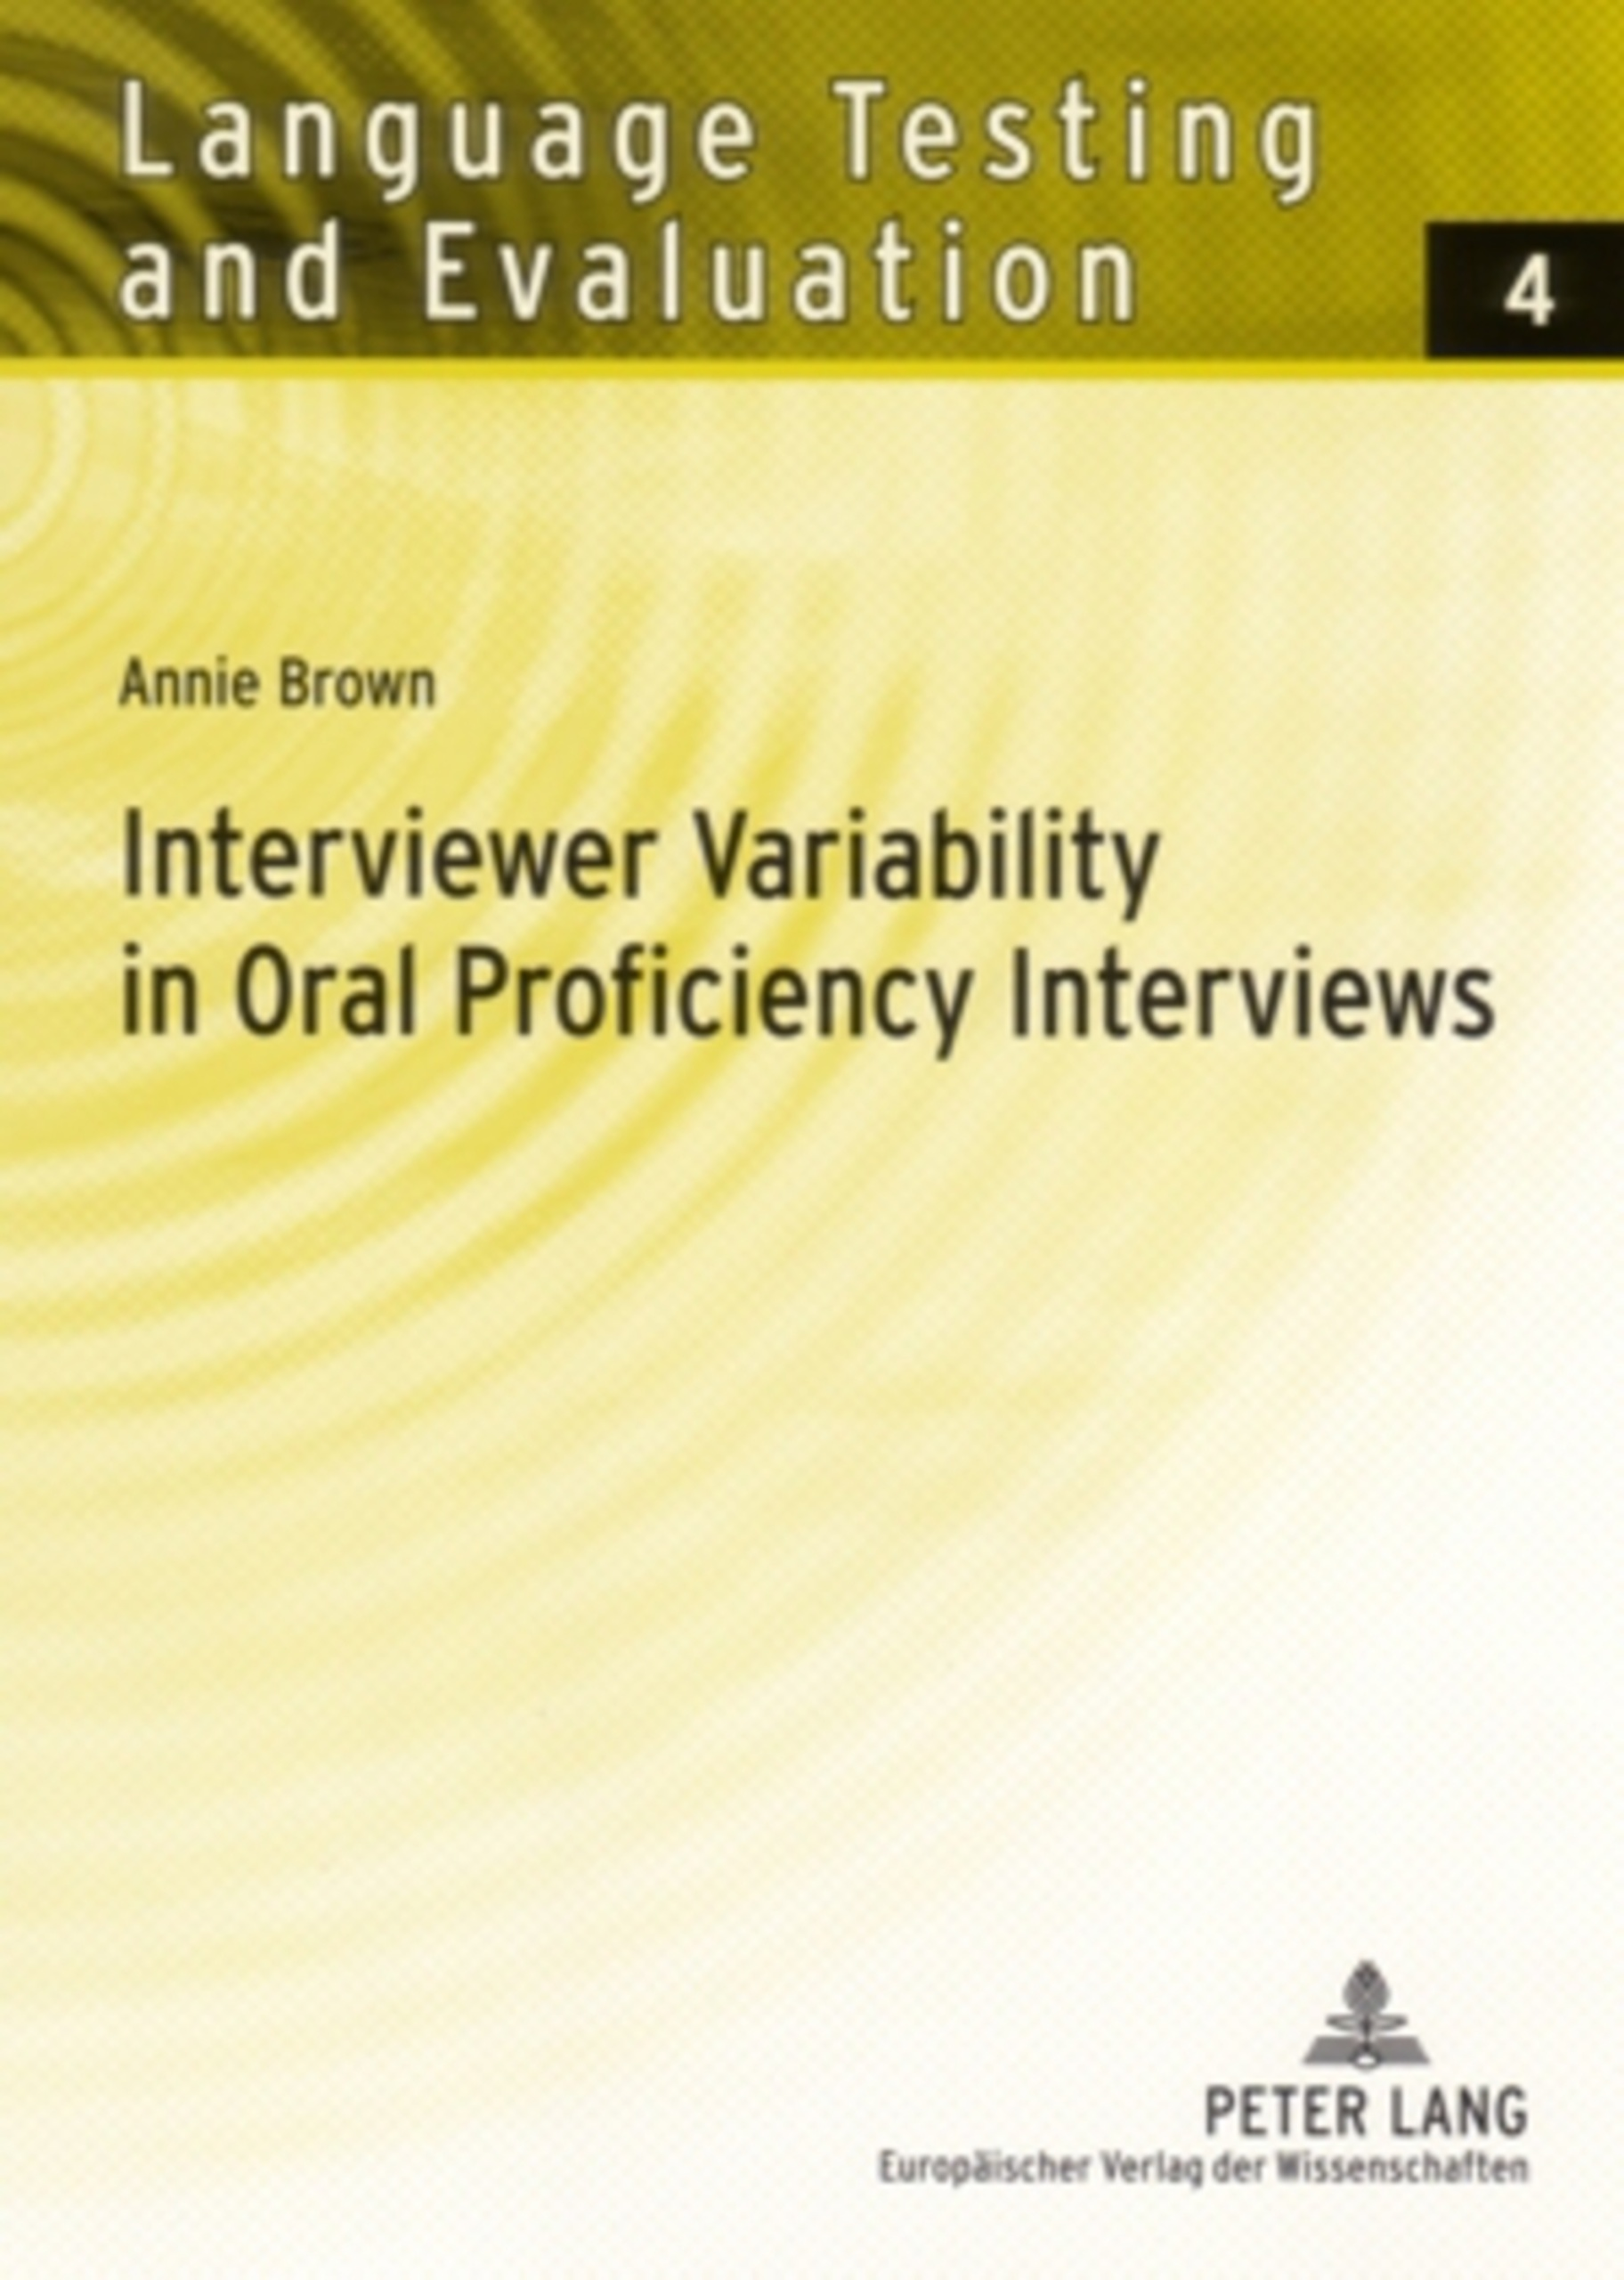 Title: Interviewer Variability in Oral Proficiency Interviews